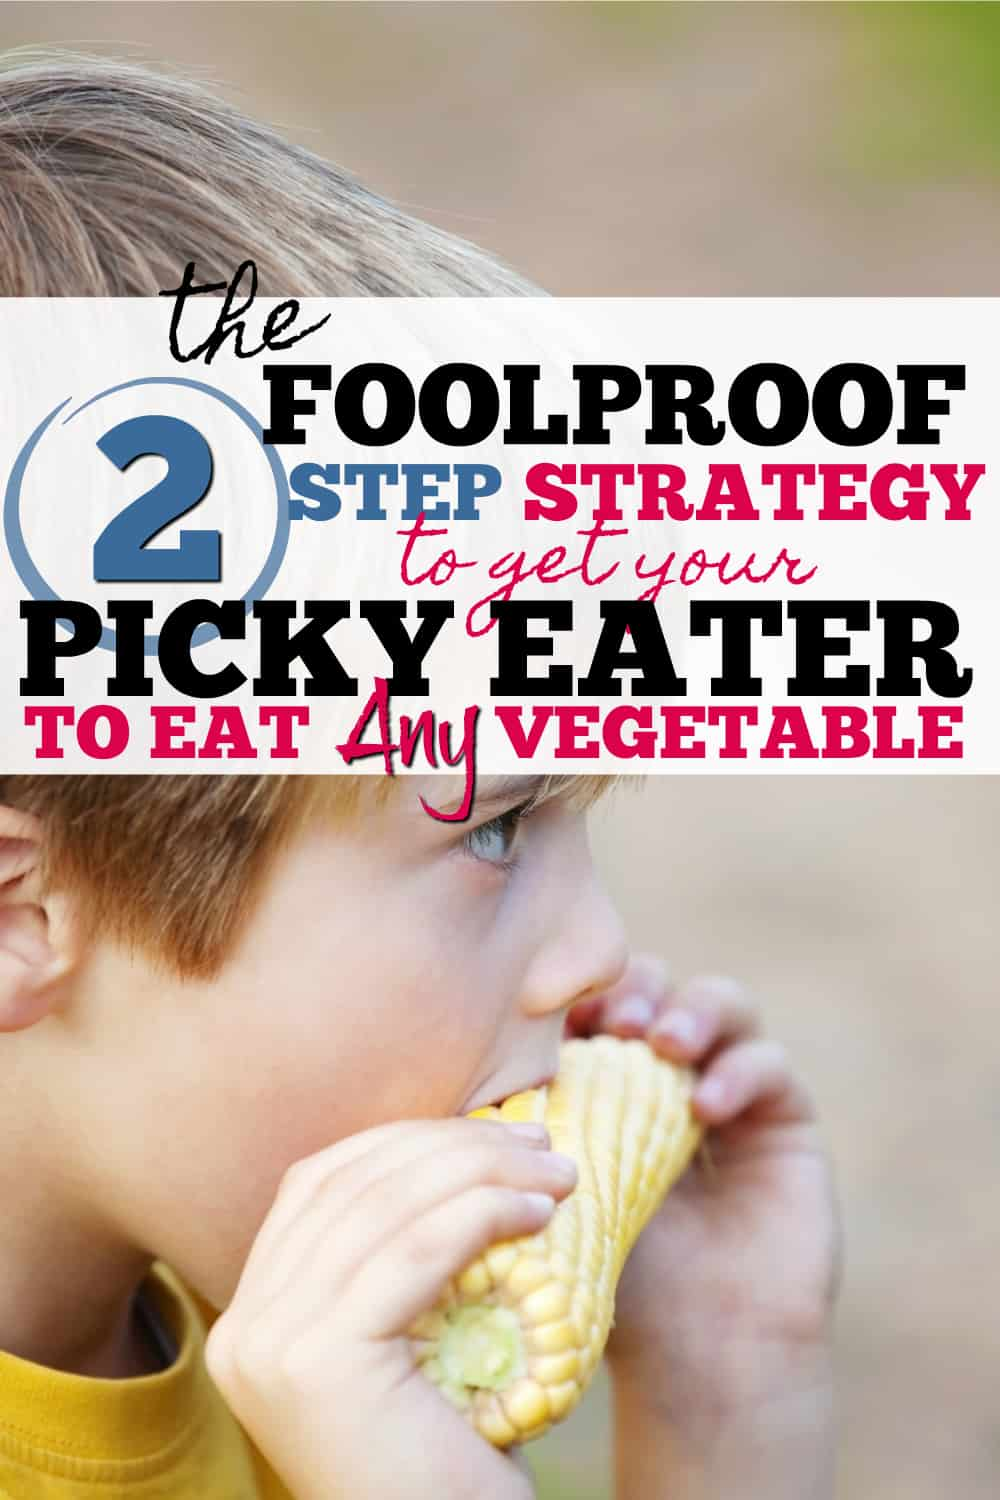 Finally! A Simple 2 Step Strategy to get your kids to eat their vegetables - even the ones they think they hate. This has worked every single time for me!